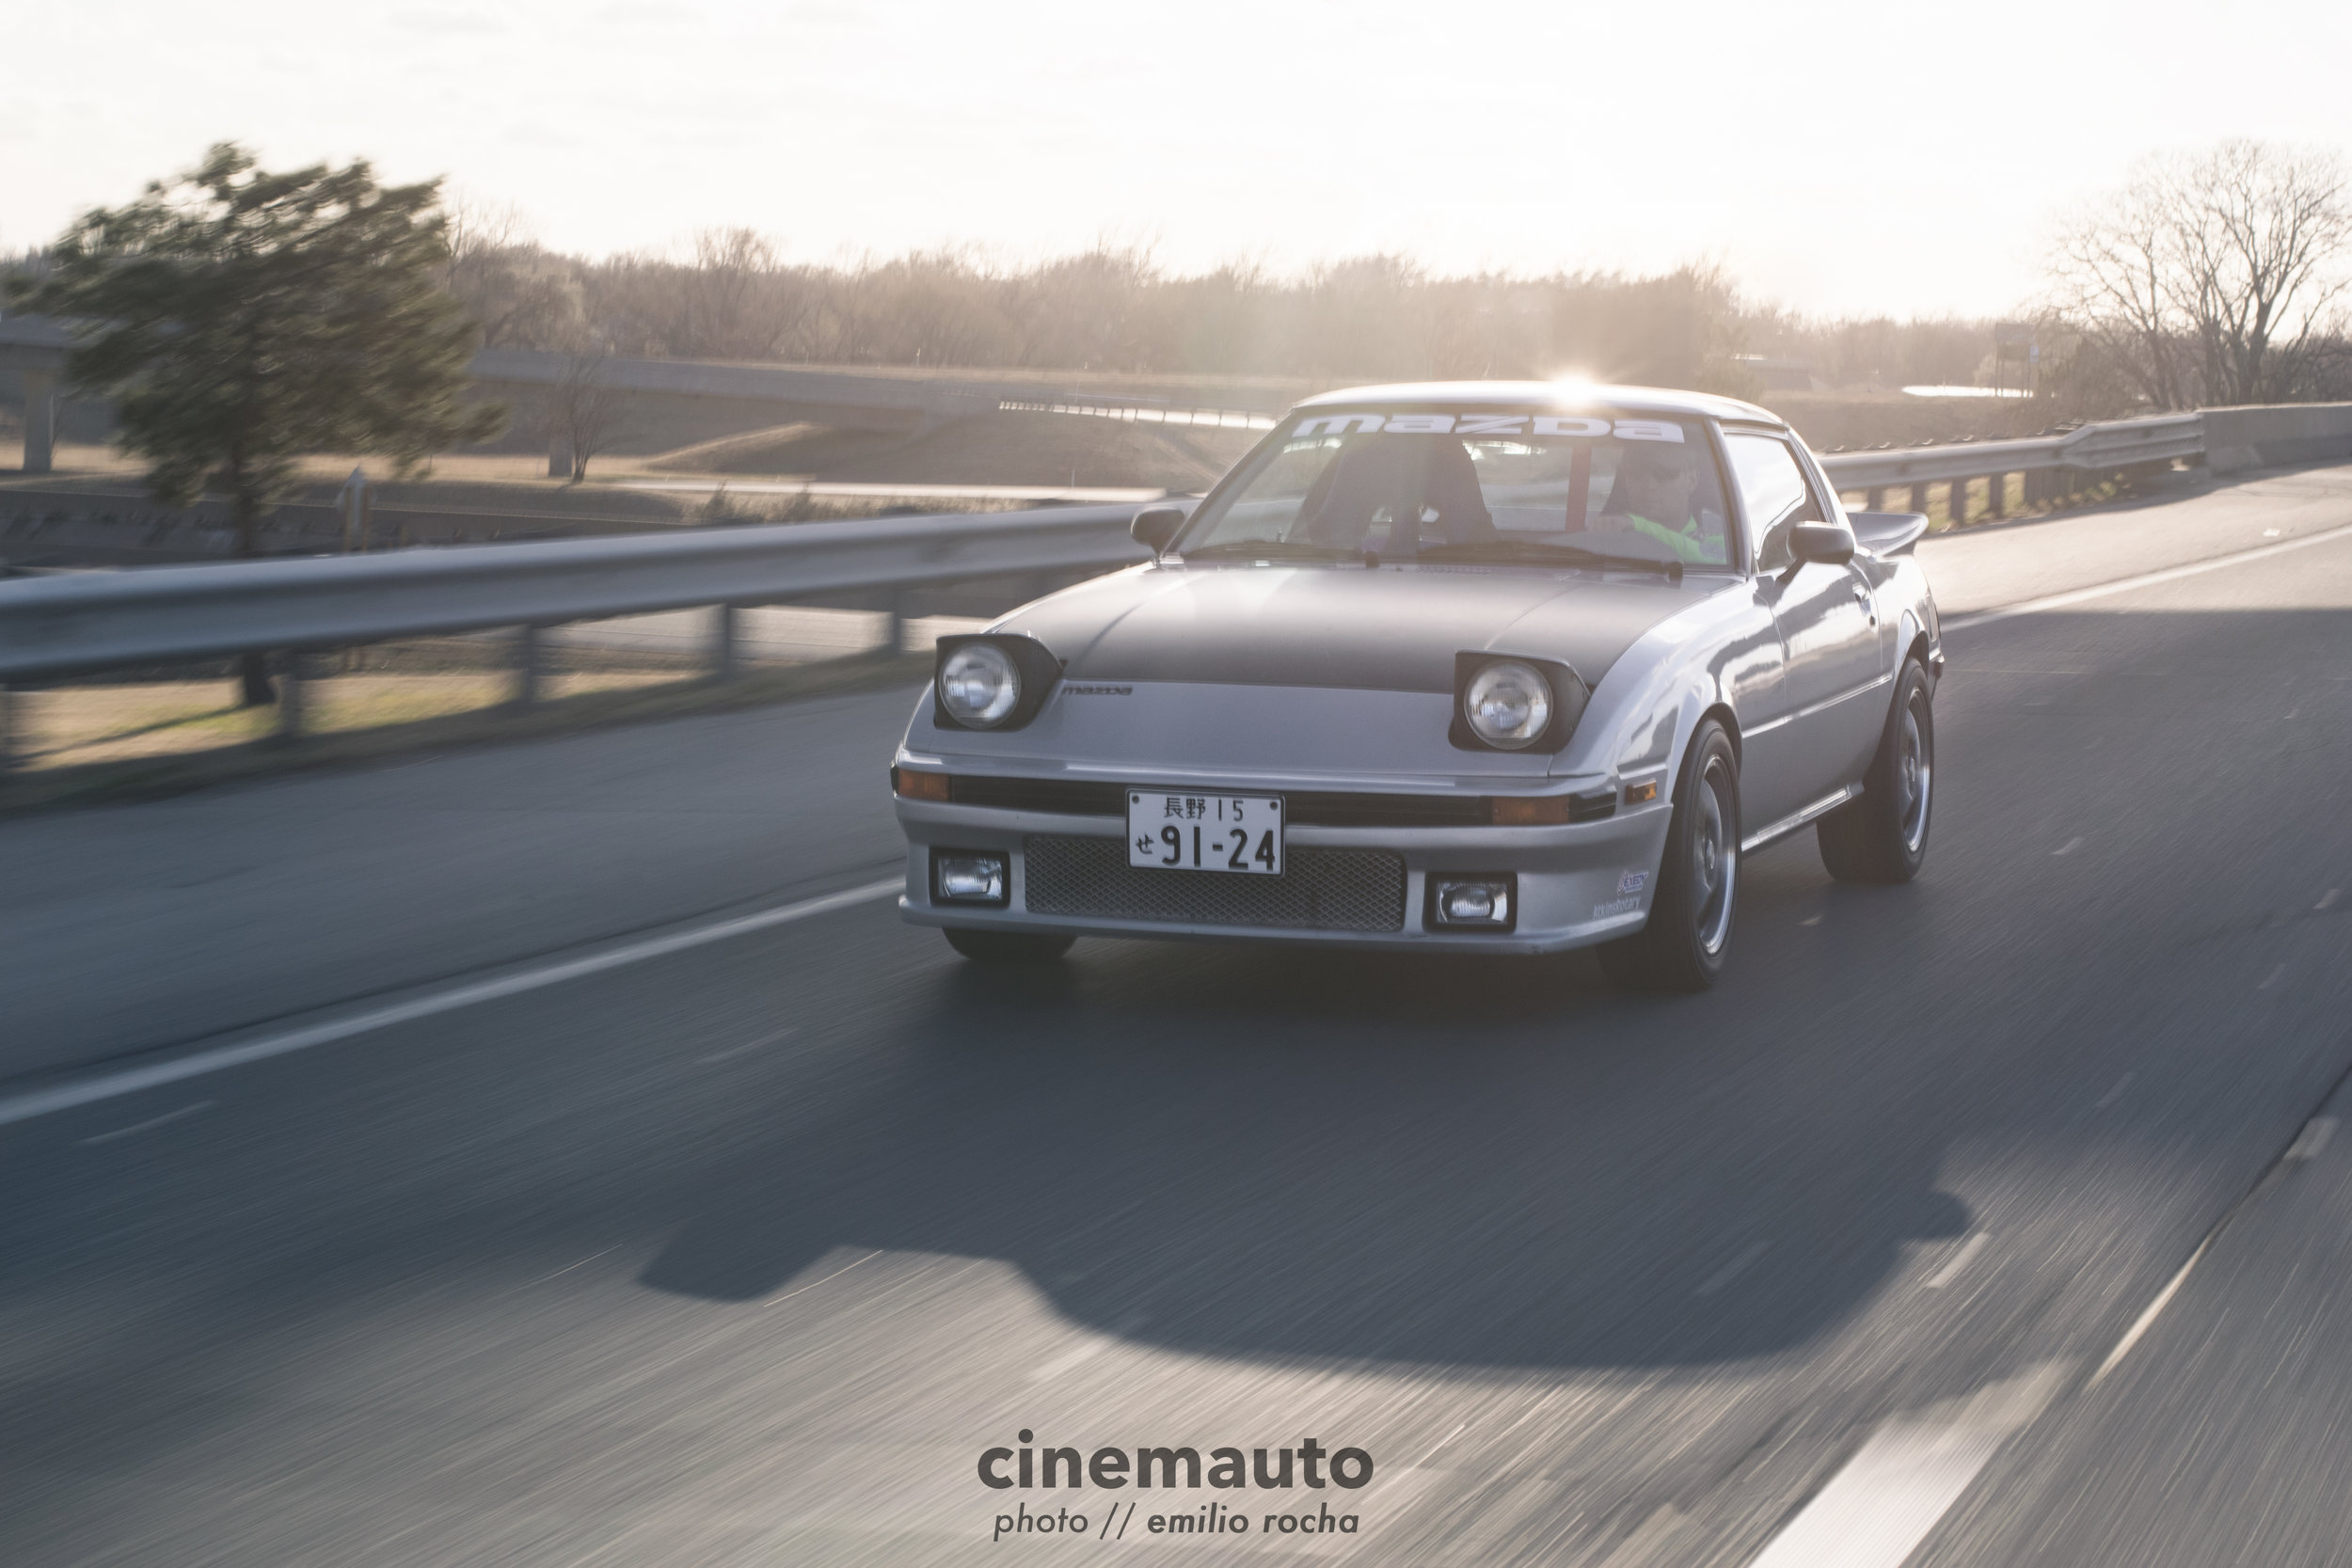 Cinemauto-RX7-29.jpg